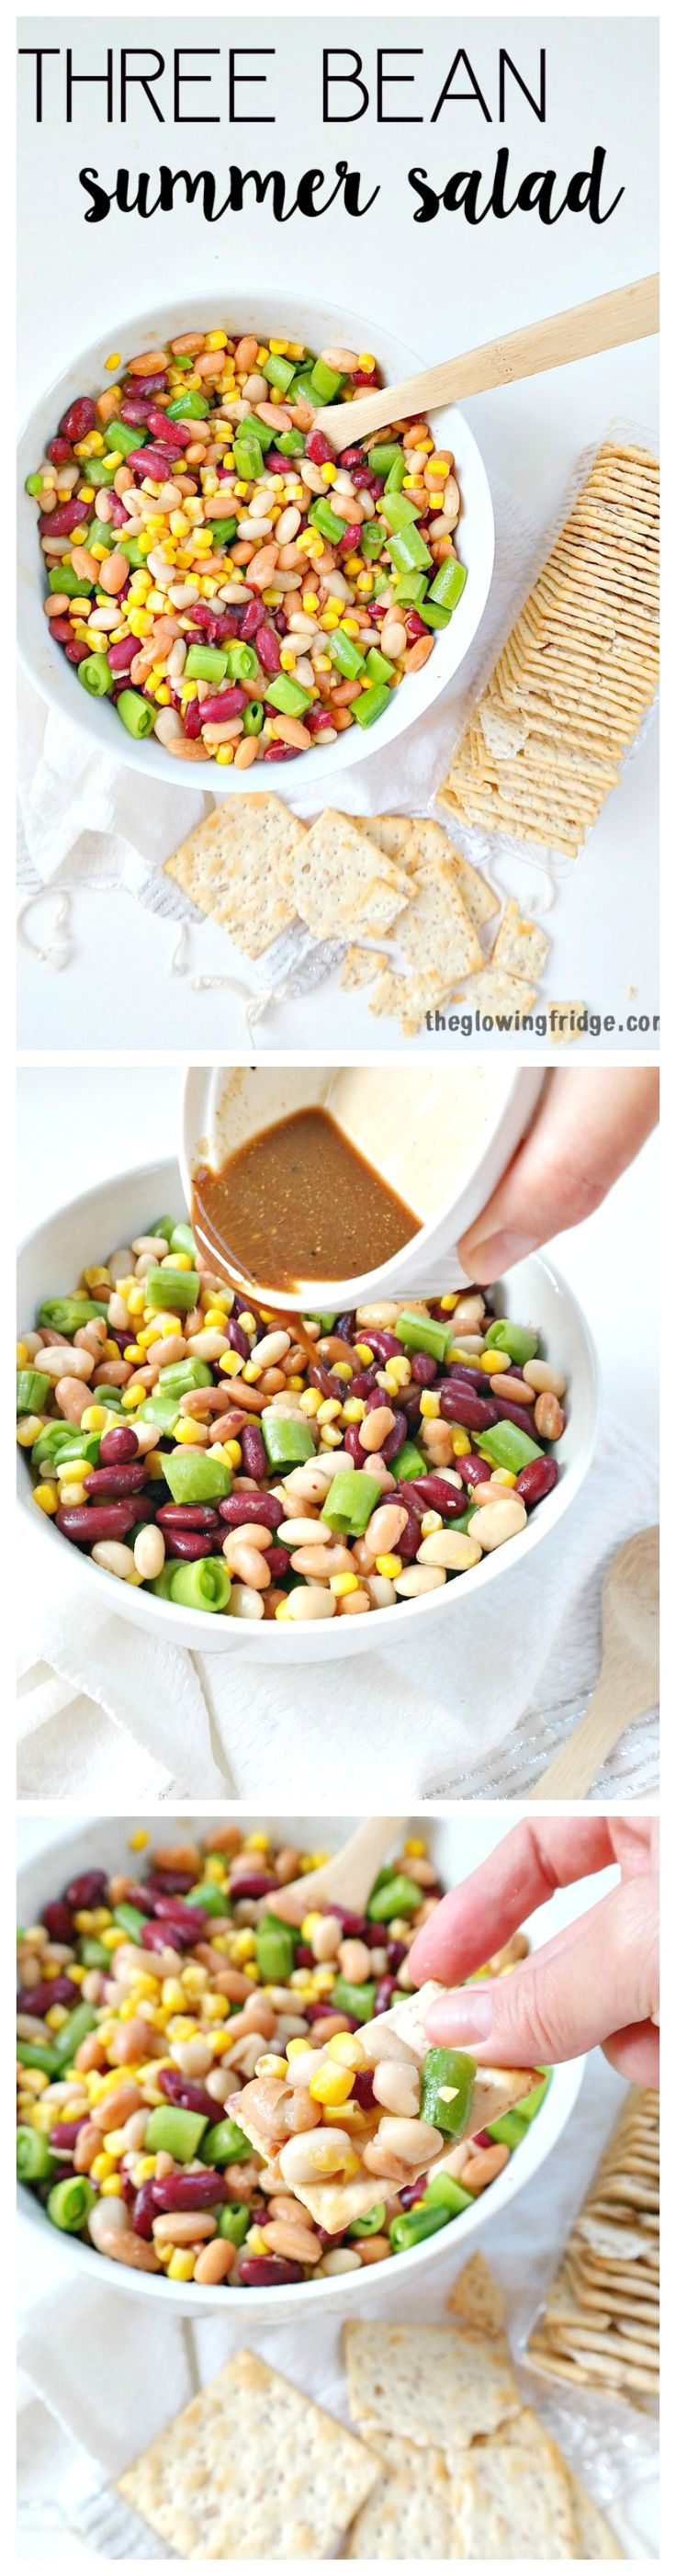 Three Bean Summer Salad. Plant Based and Vegan with an Oil Free Vinaigrette Dressing. The perfect chilled summer salad that gets better after a few hours in the fridge. Crunchy, totally satisfying, filling and healthy!